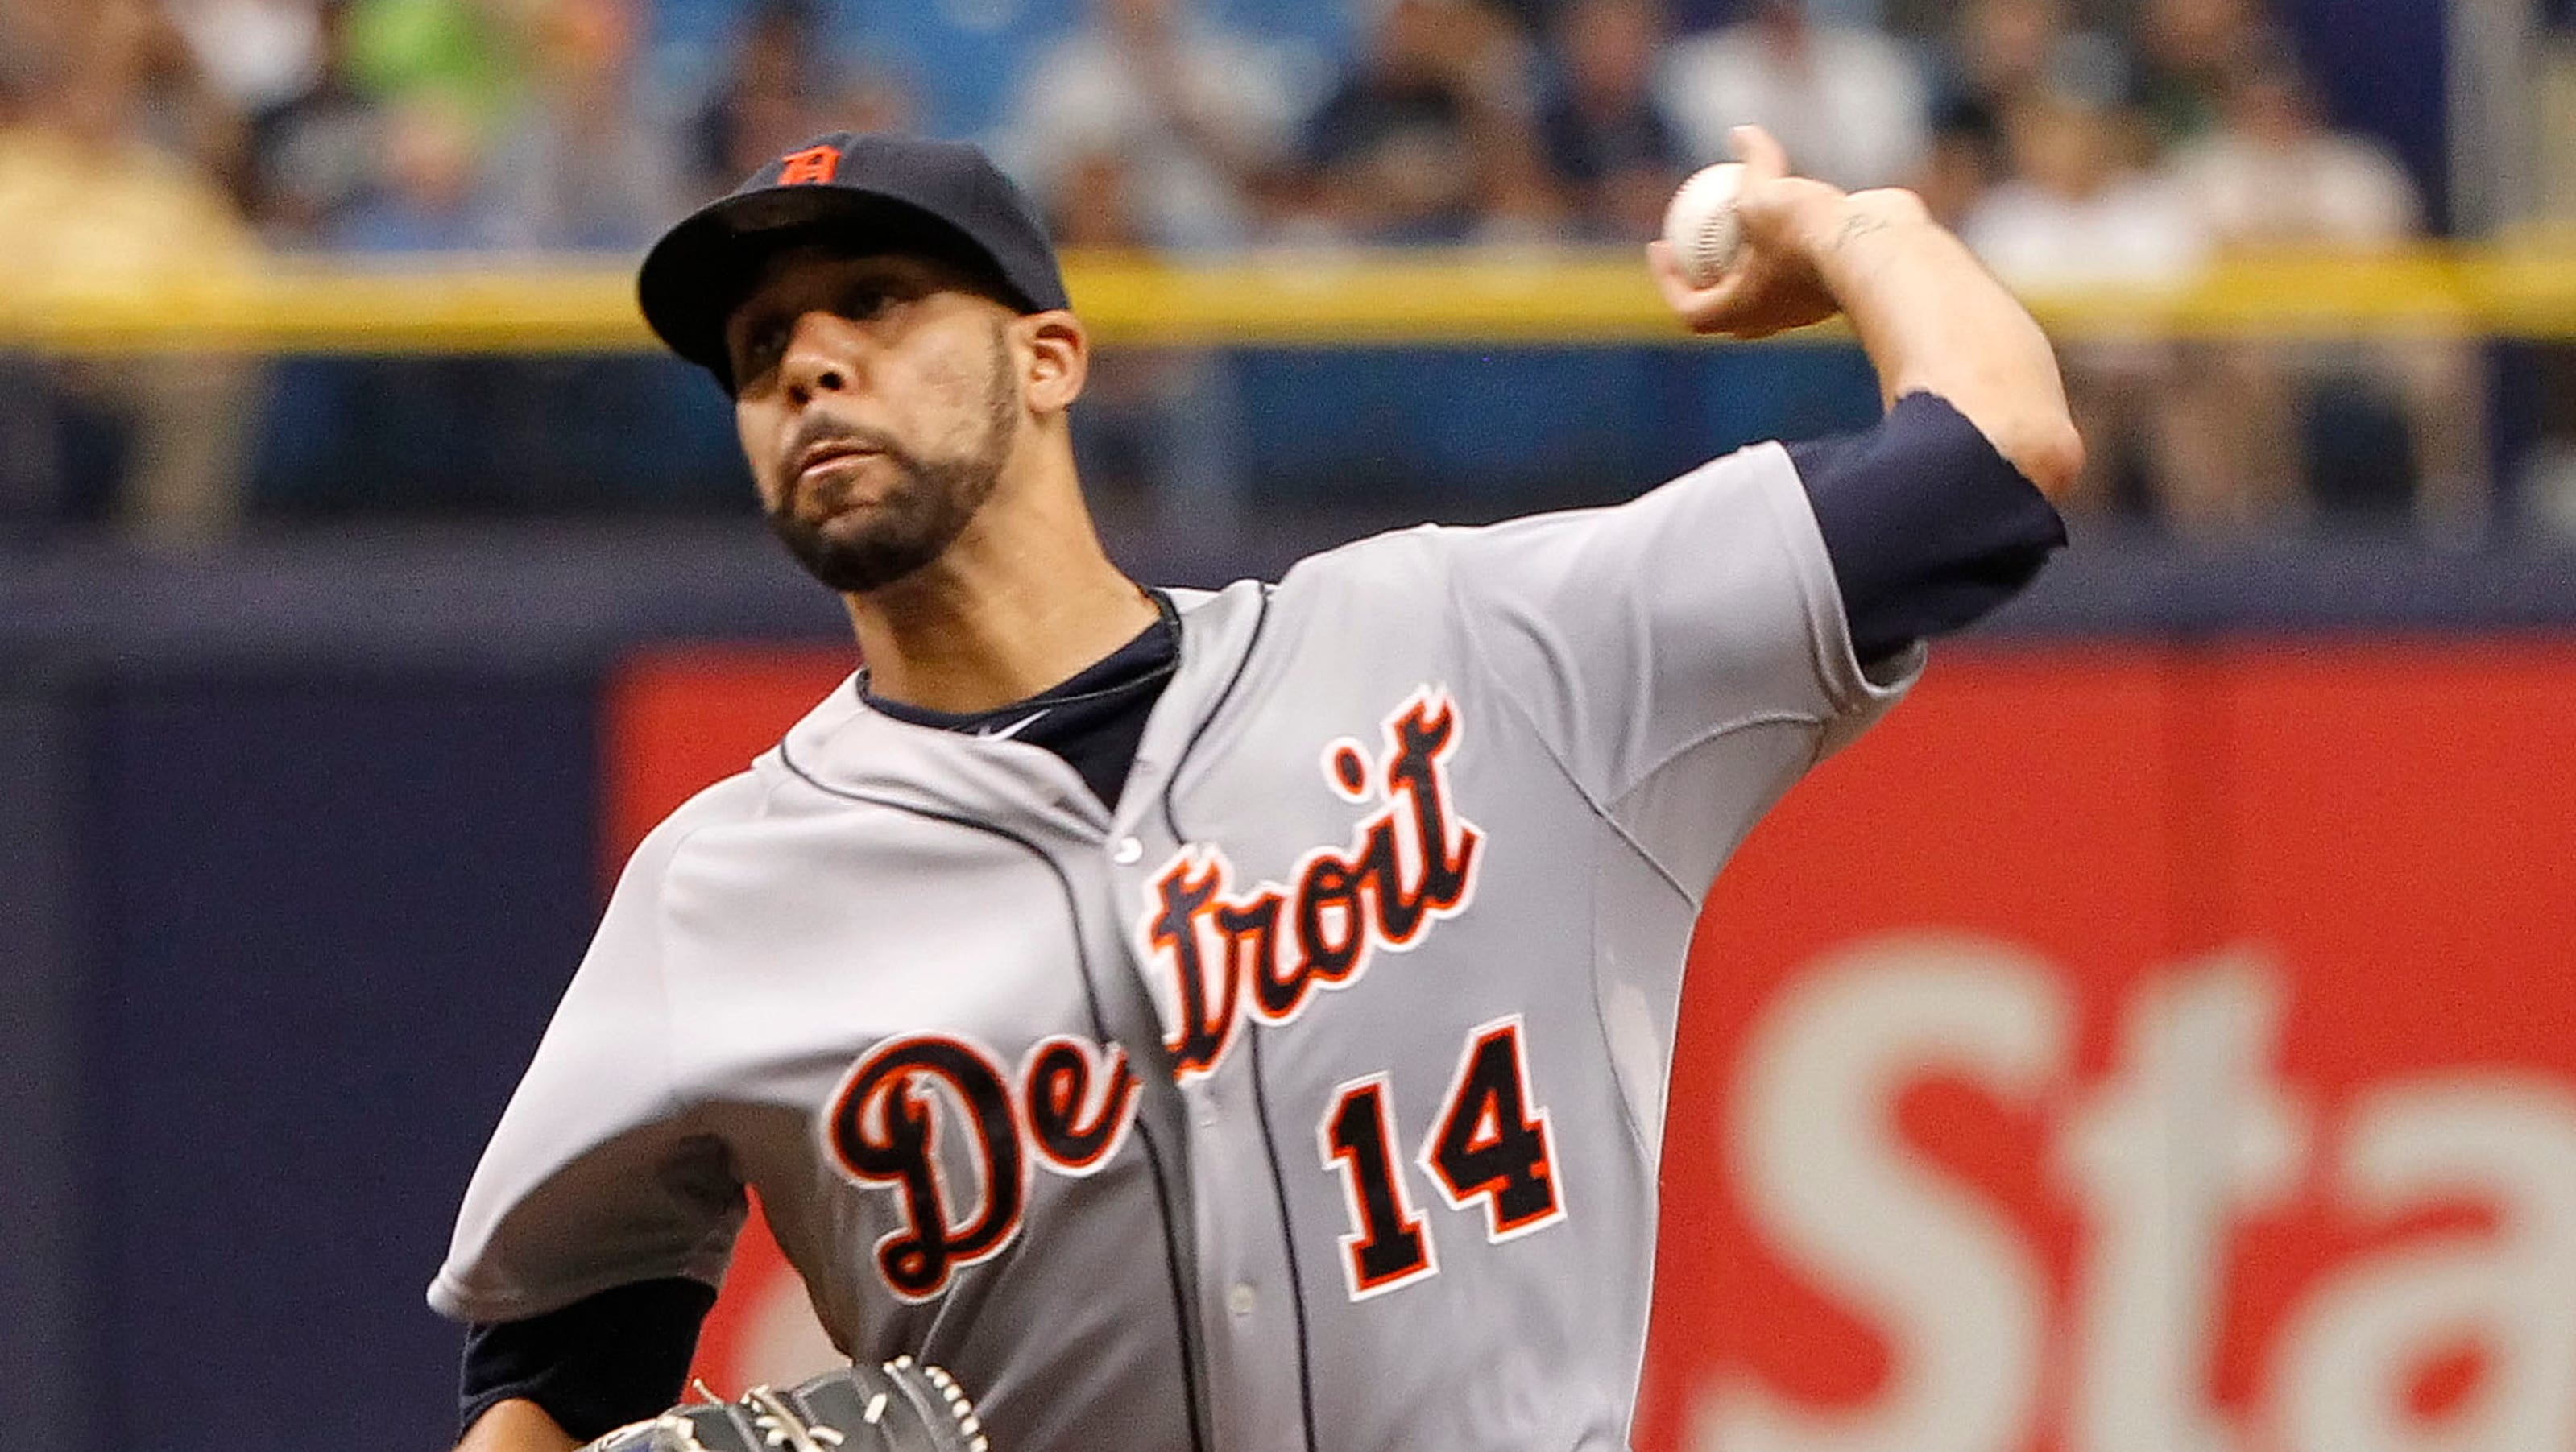 David Price can bring home AL Central title for Tigers